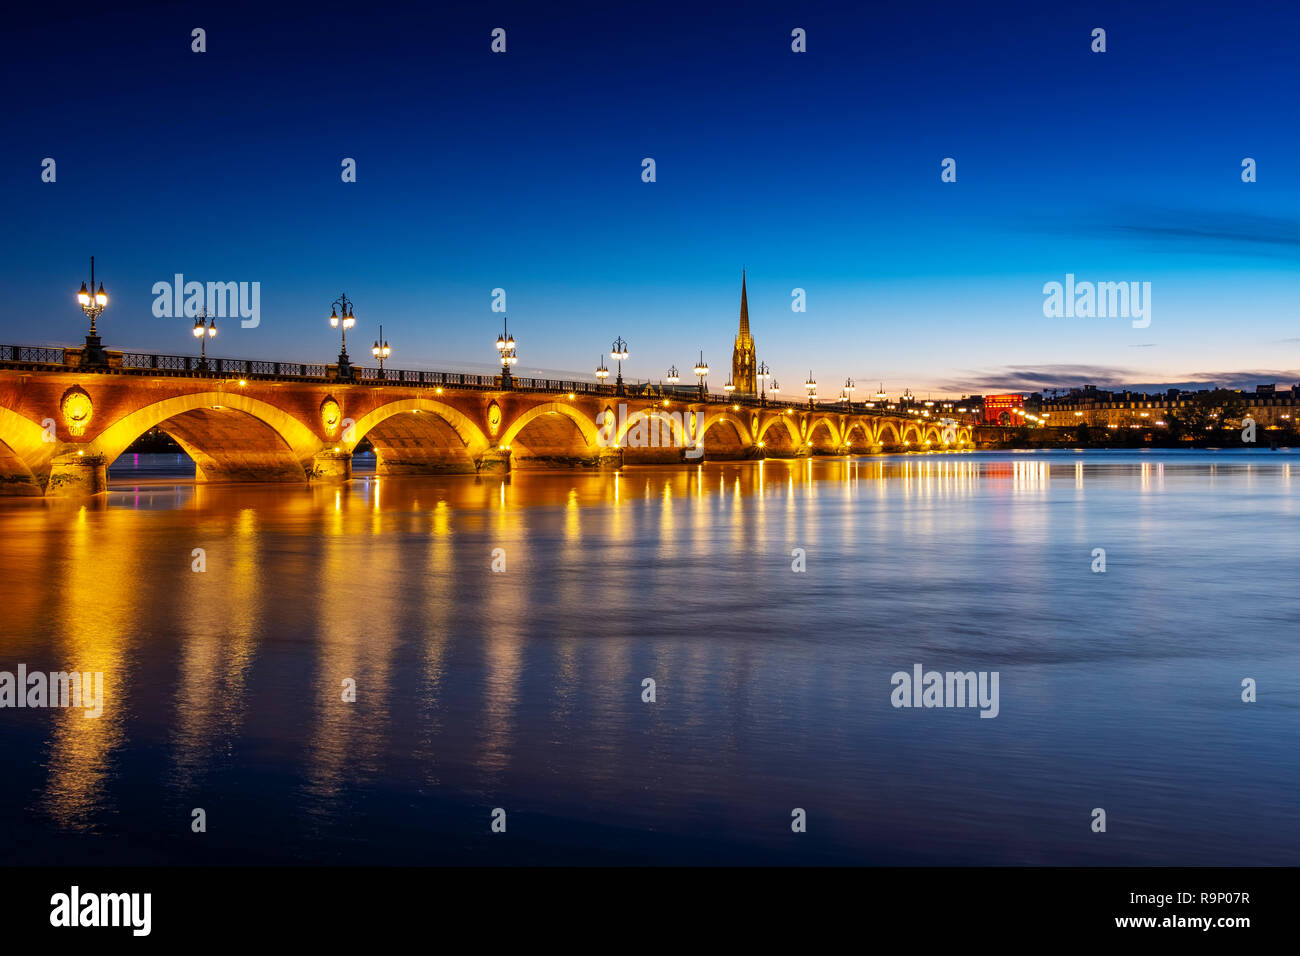 Pont de Pierre at dusk. Stone Bridge & Garonne River. Bordeaux, Gironde. Aquitaine region. France Europe - Stock Image